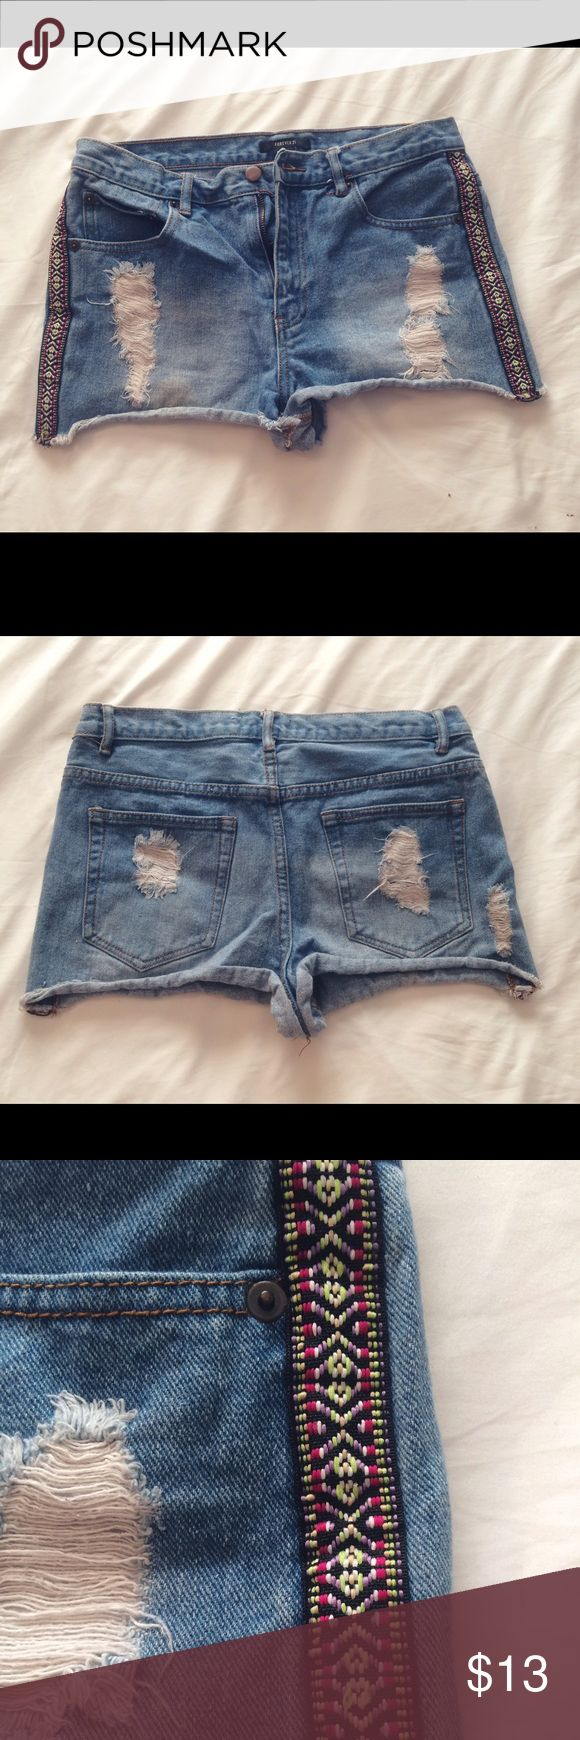 High Waisted Jean Shorts - Forever 21 These are the perfect staple high waisted shorts for your wardrobe, they definitely were for me! They're well loved, but I personally think that makes jean shorts look even better. They're certainly not in bad condition either, just not brand new. The tribal side panel on them gives just enough spark to this pair to spice things up while still keeping it classic. Forever 21 Shorts Jean Shorts